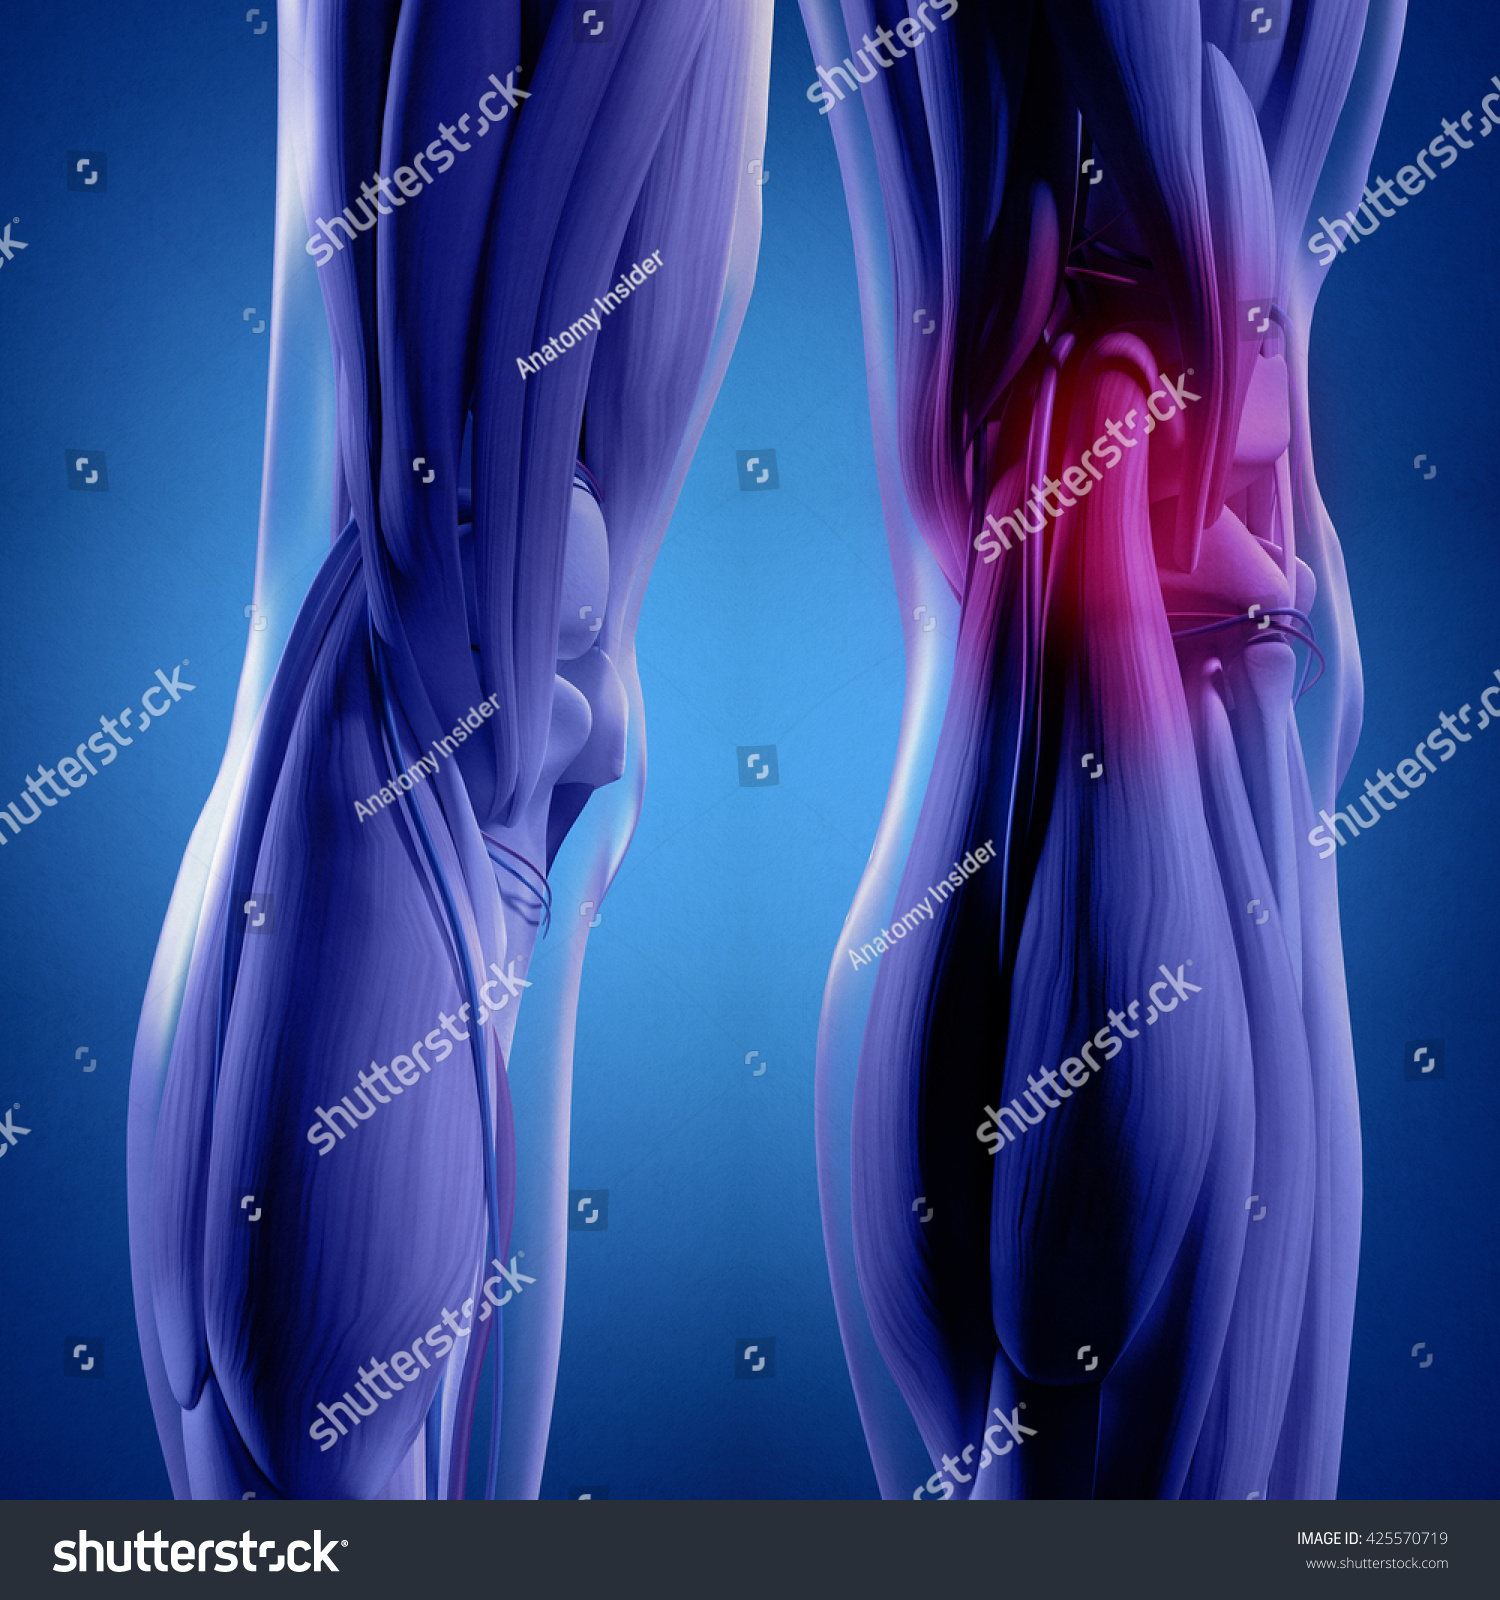 Royalty Free Stock Illustration Of Human Anatomy Back Legs Calf